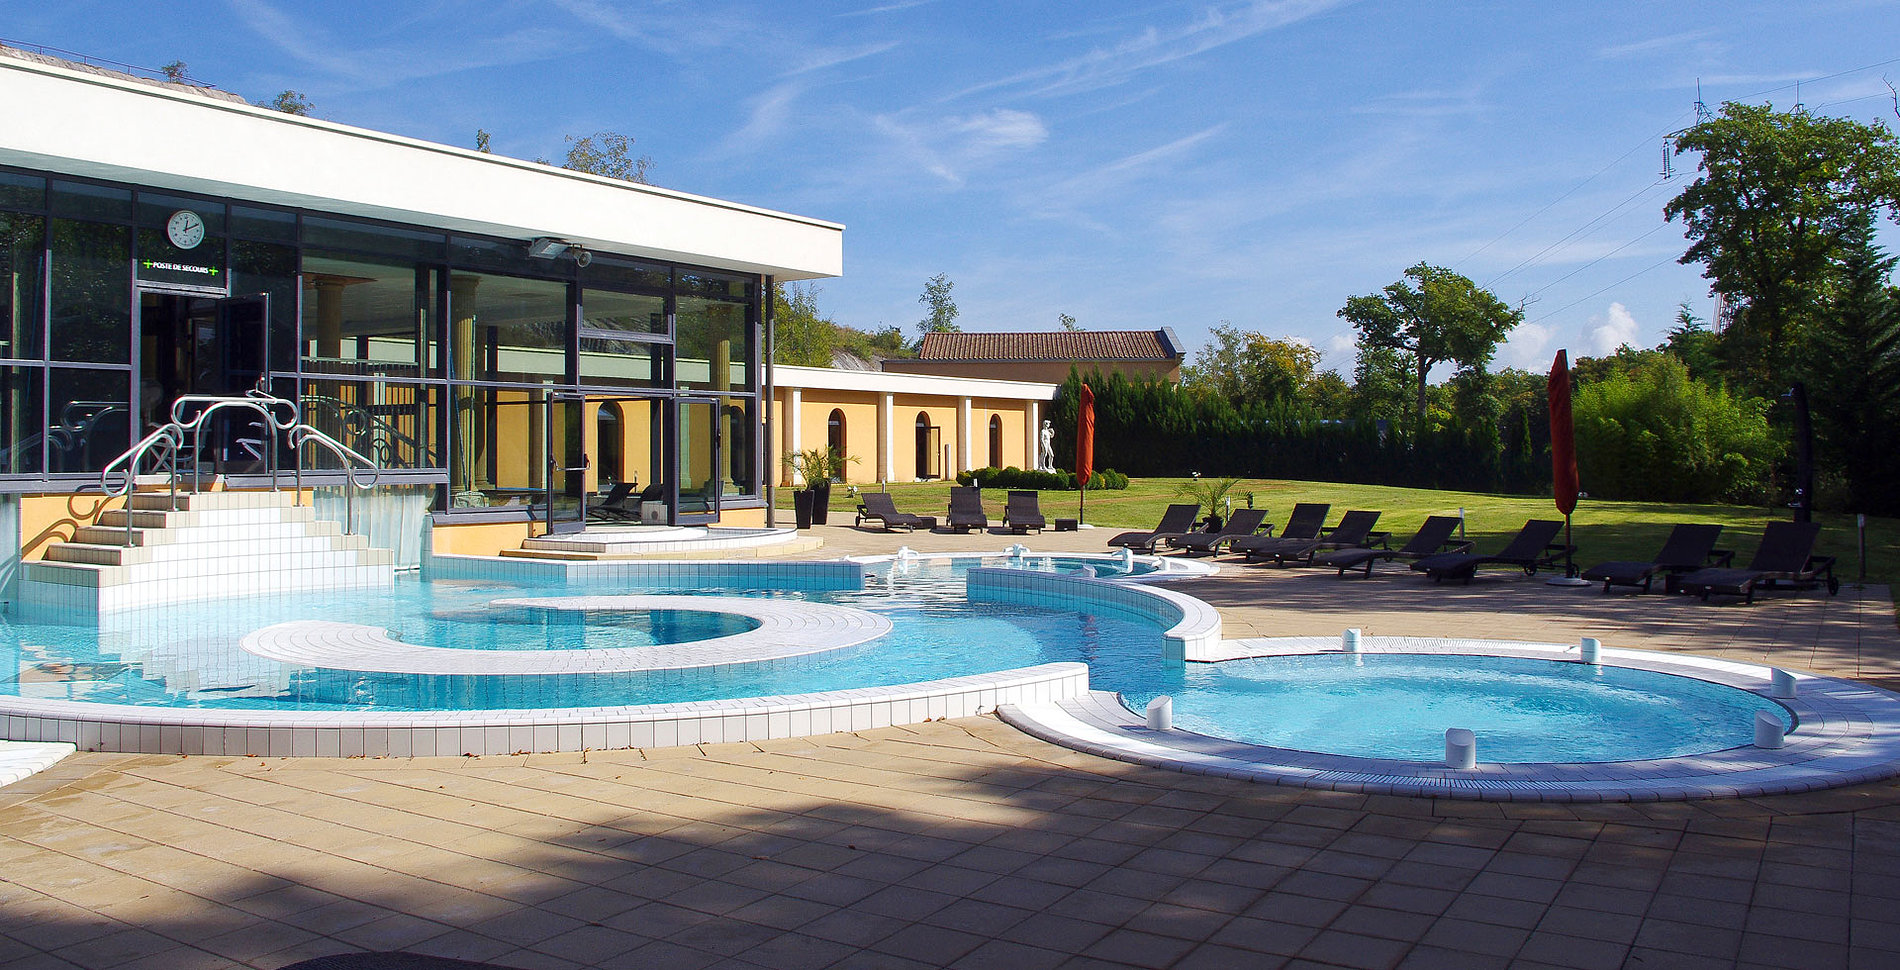 P le thermal amn ville comit d 39 entreprise psa for Amneville les thermes piscine